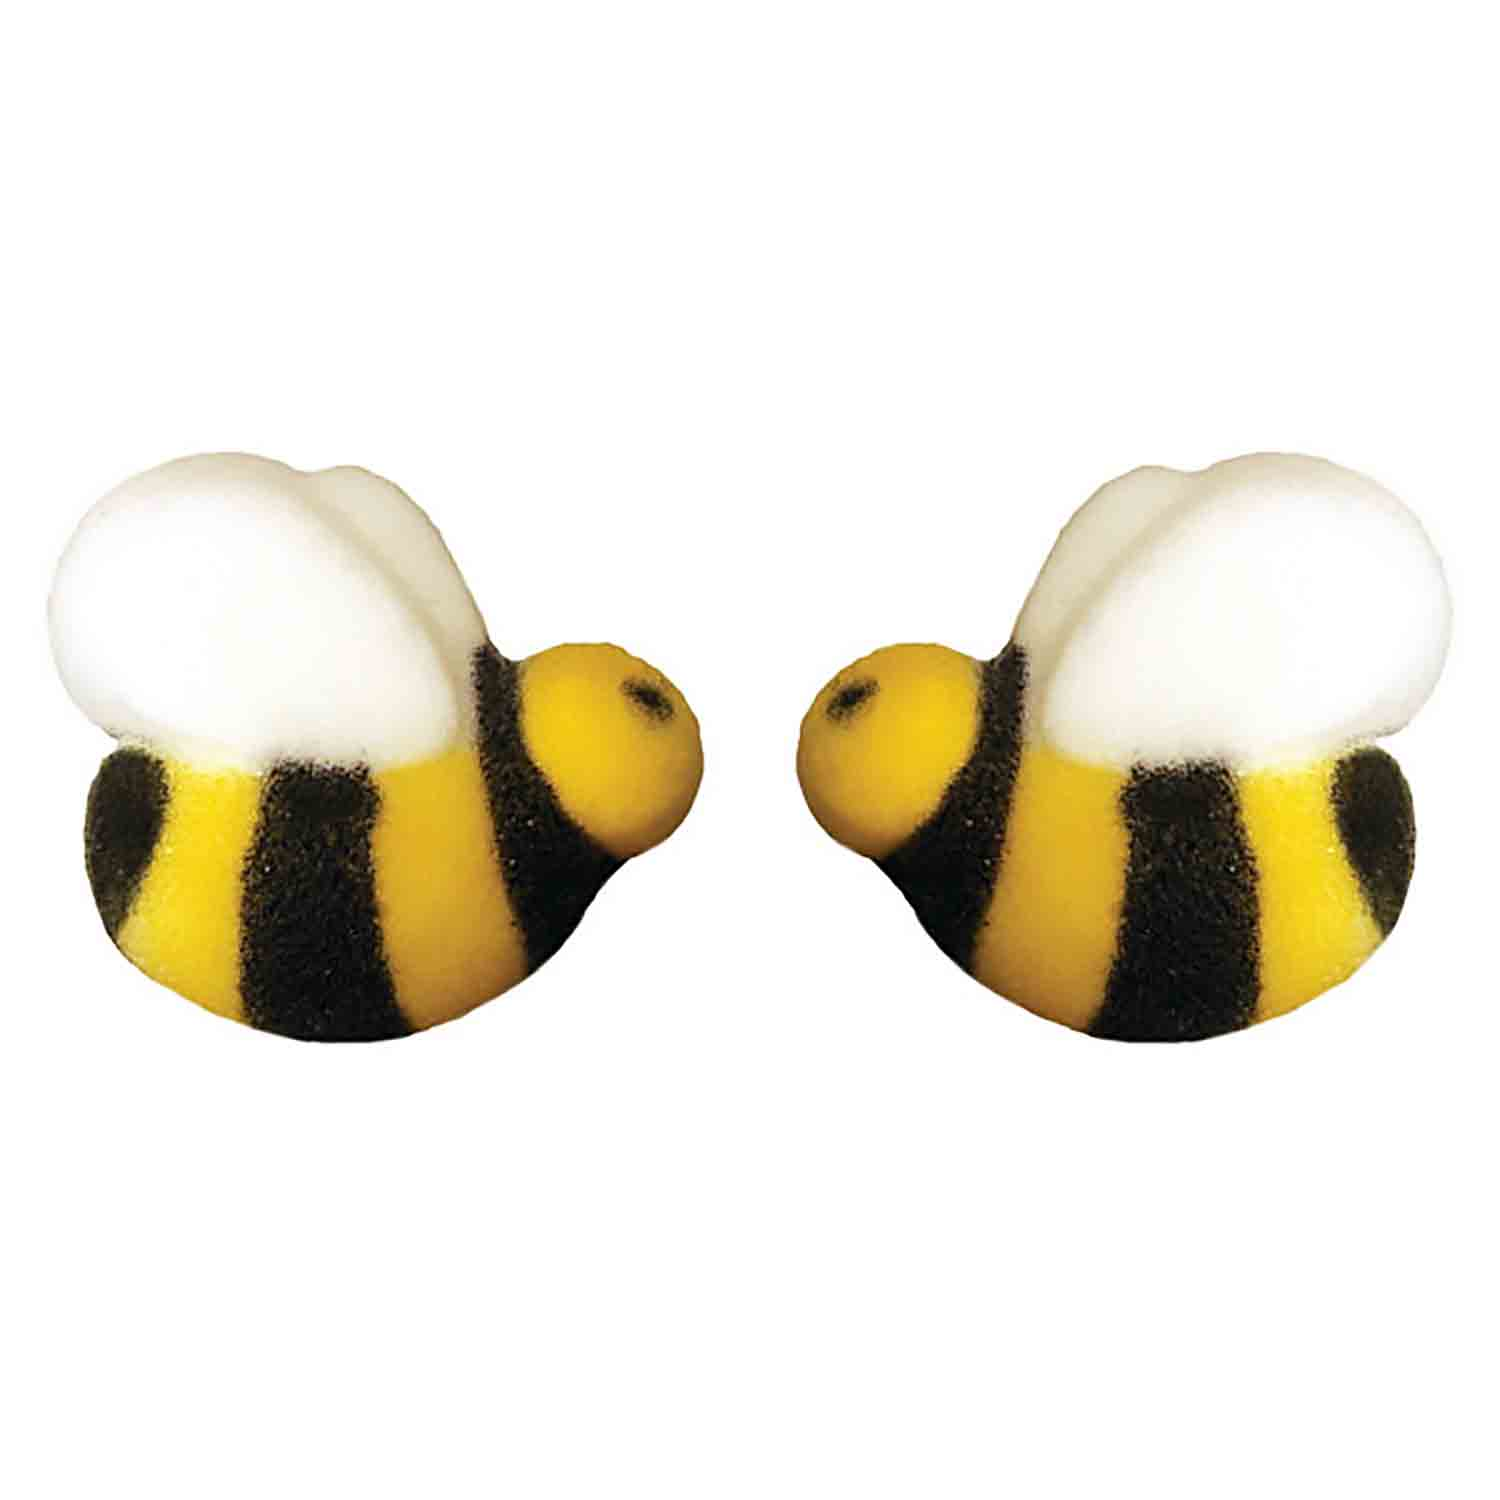 Dec-Ons® Molded Sugar - Bumble Bees